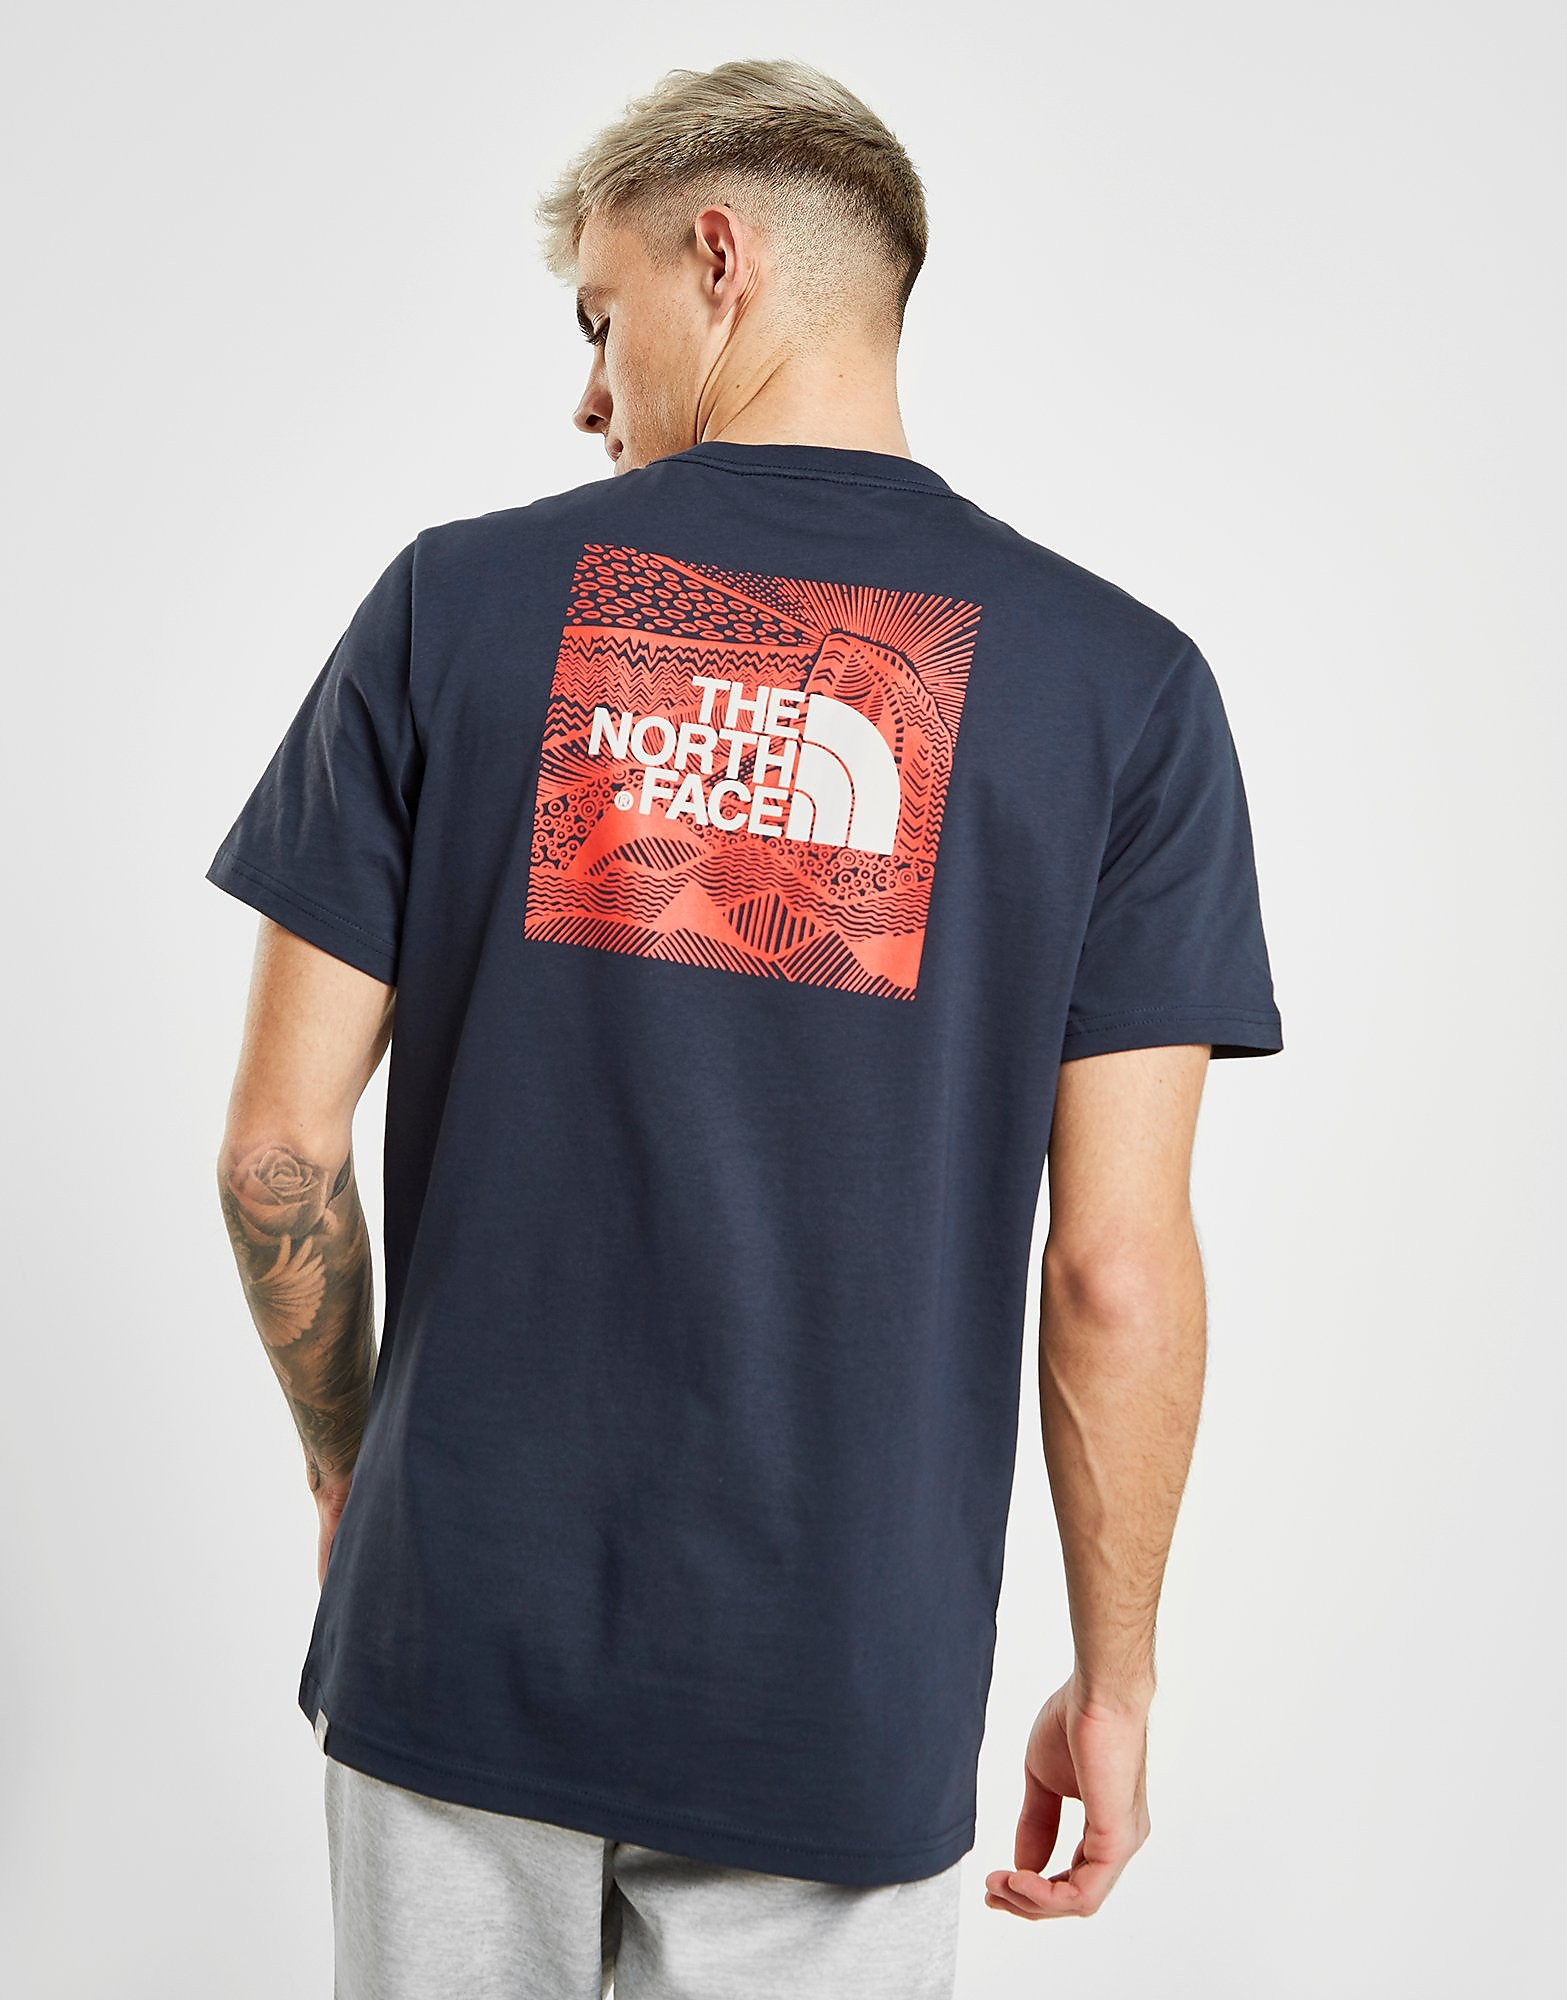 The North Face Redbox Celebration T-Shirt Heren - Blauw - Heren